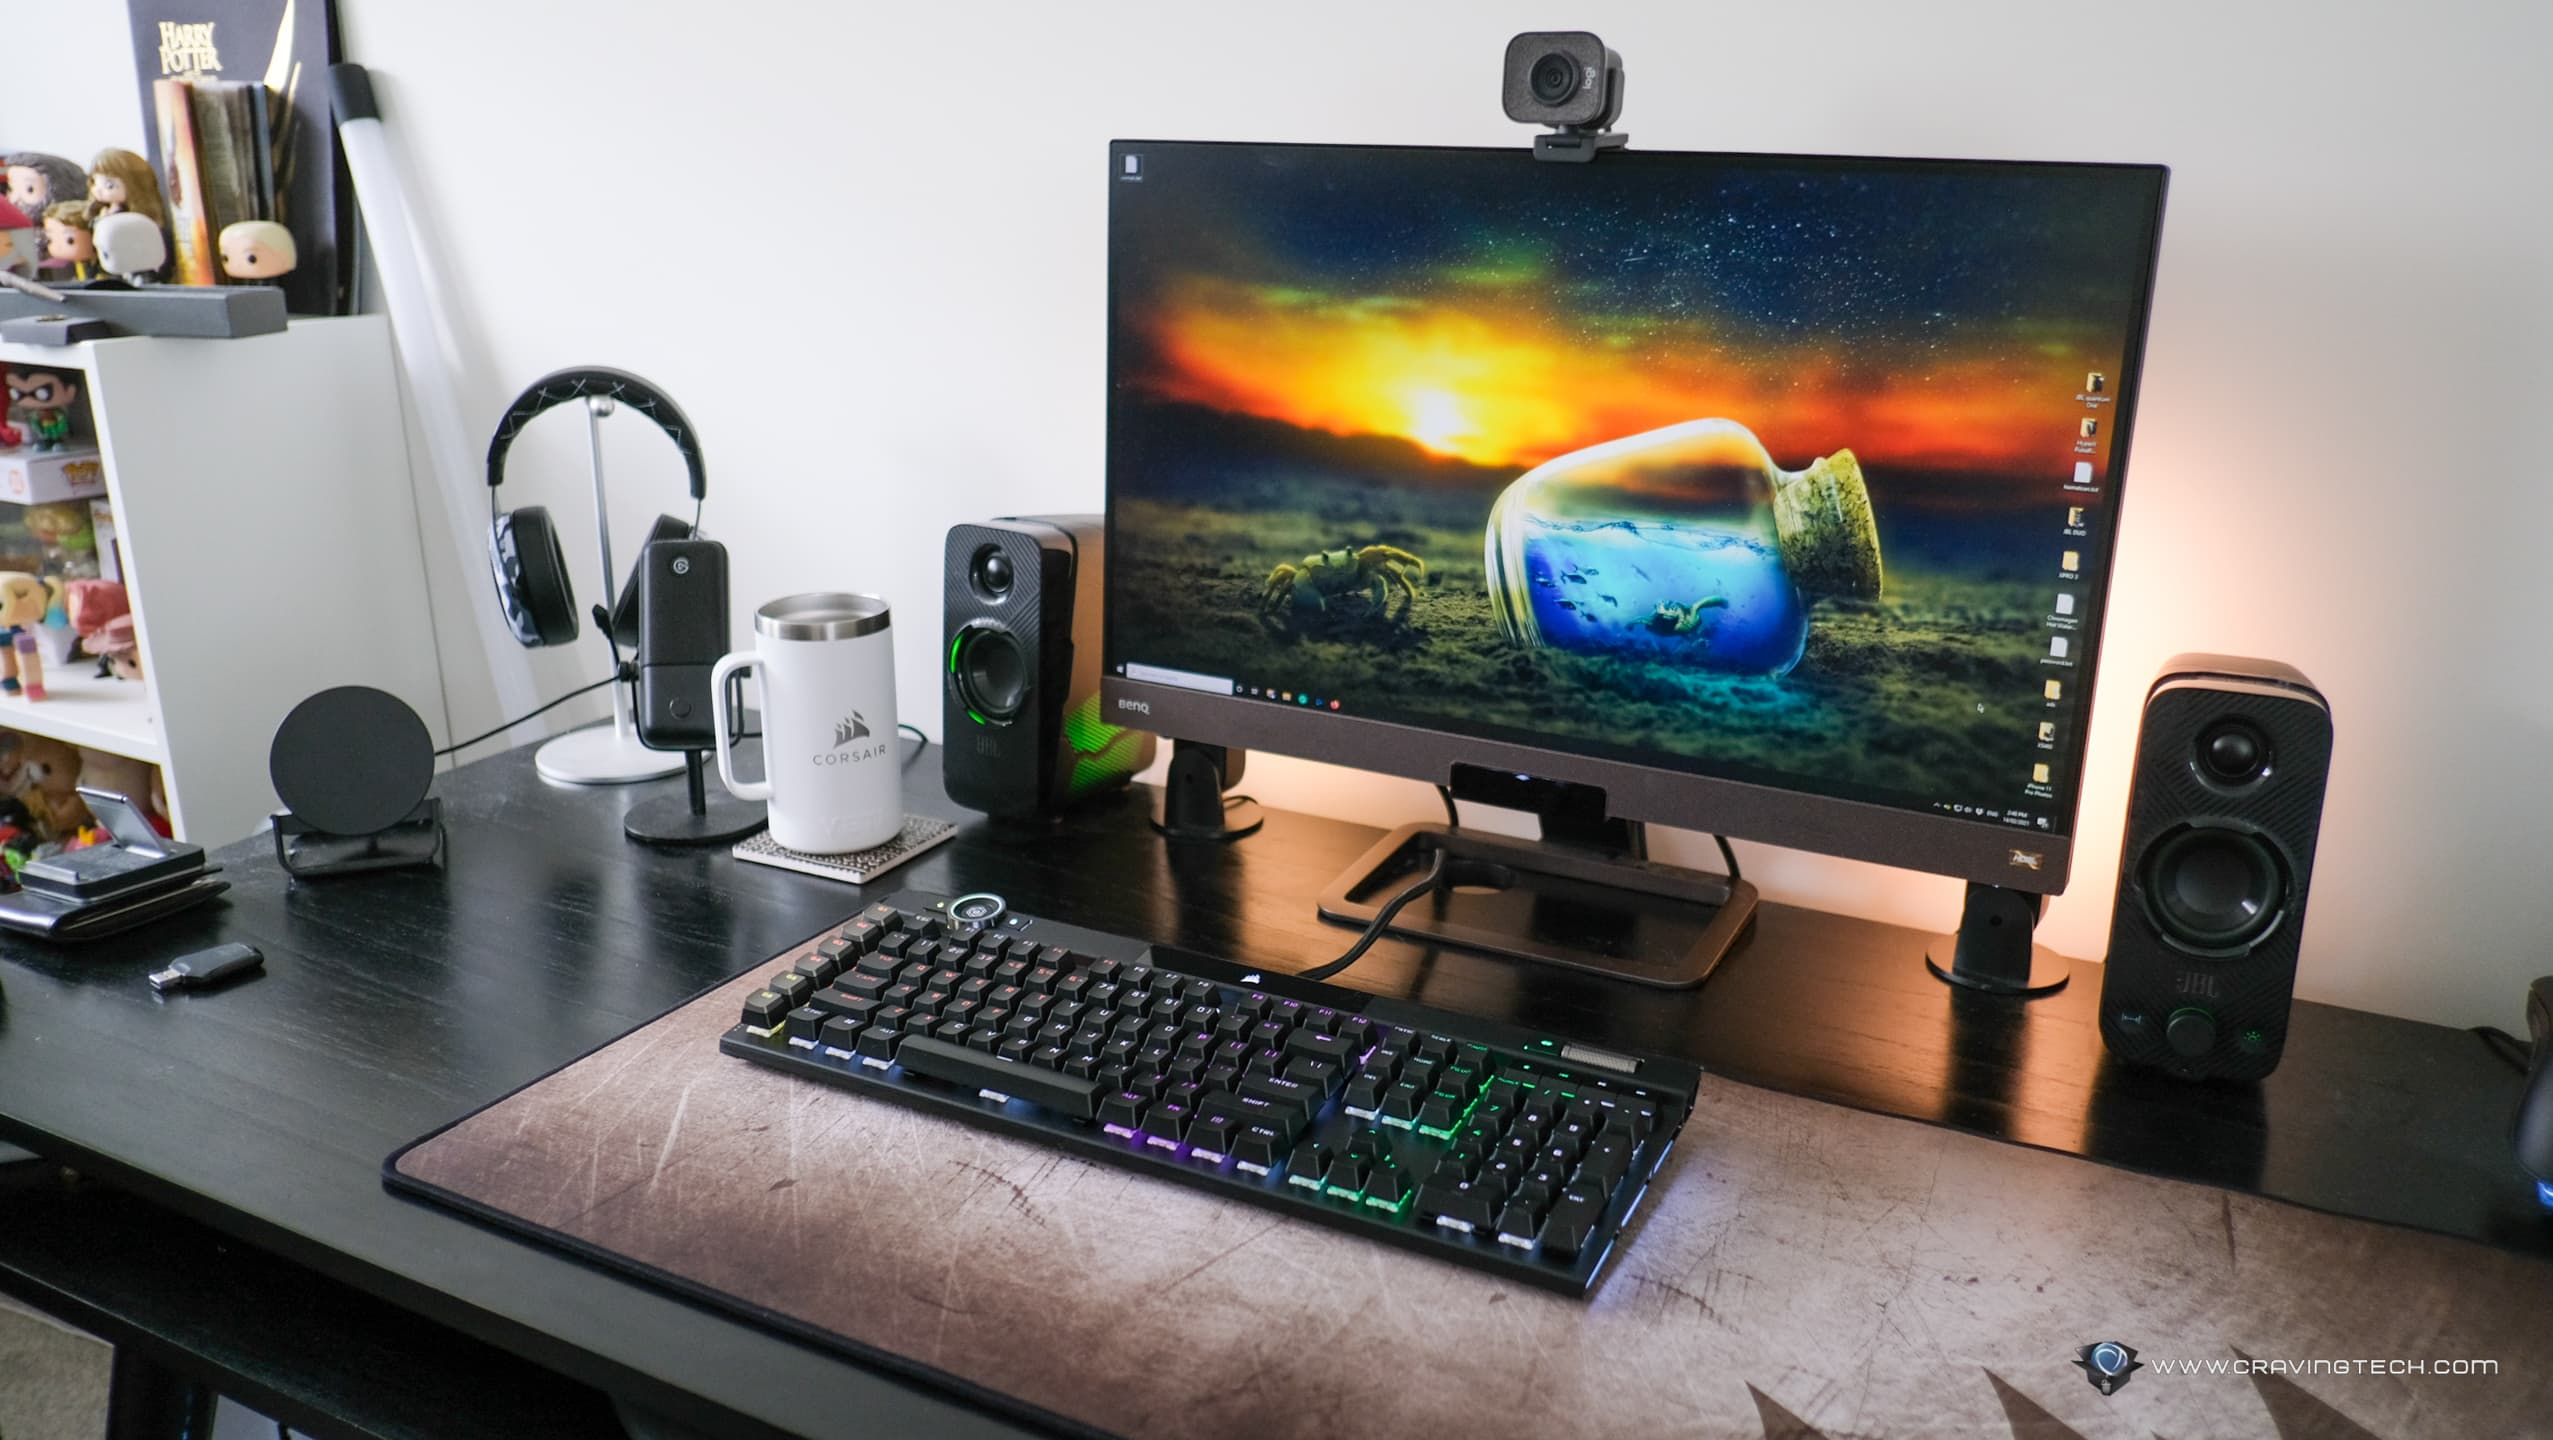 CORSAIR-K100-RGB-with-OPX-switches-01